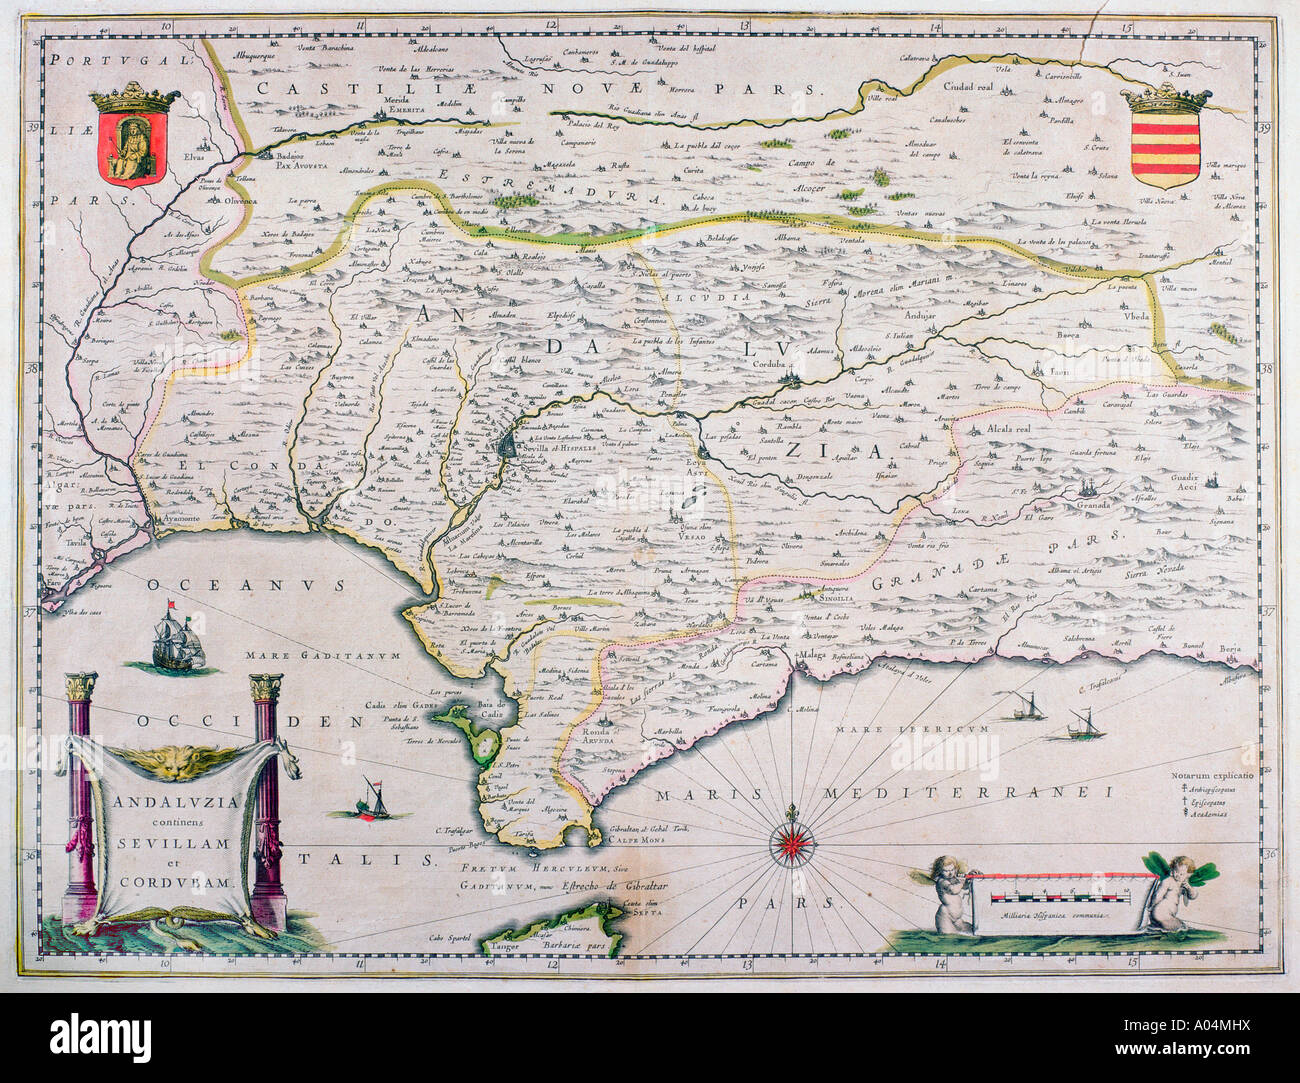 Map of Andalusia Spain by Willem and or Joannes Blaeu published Amsterdam 1640 - Stock Image